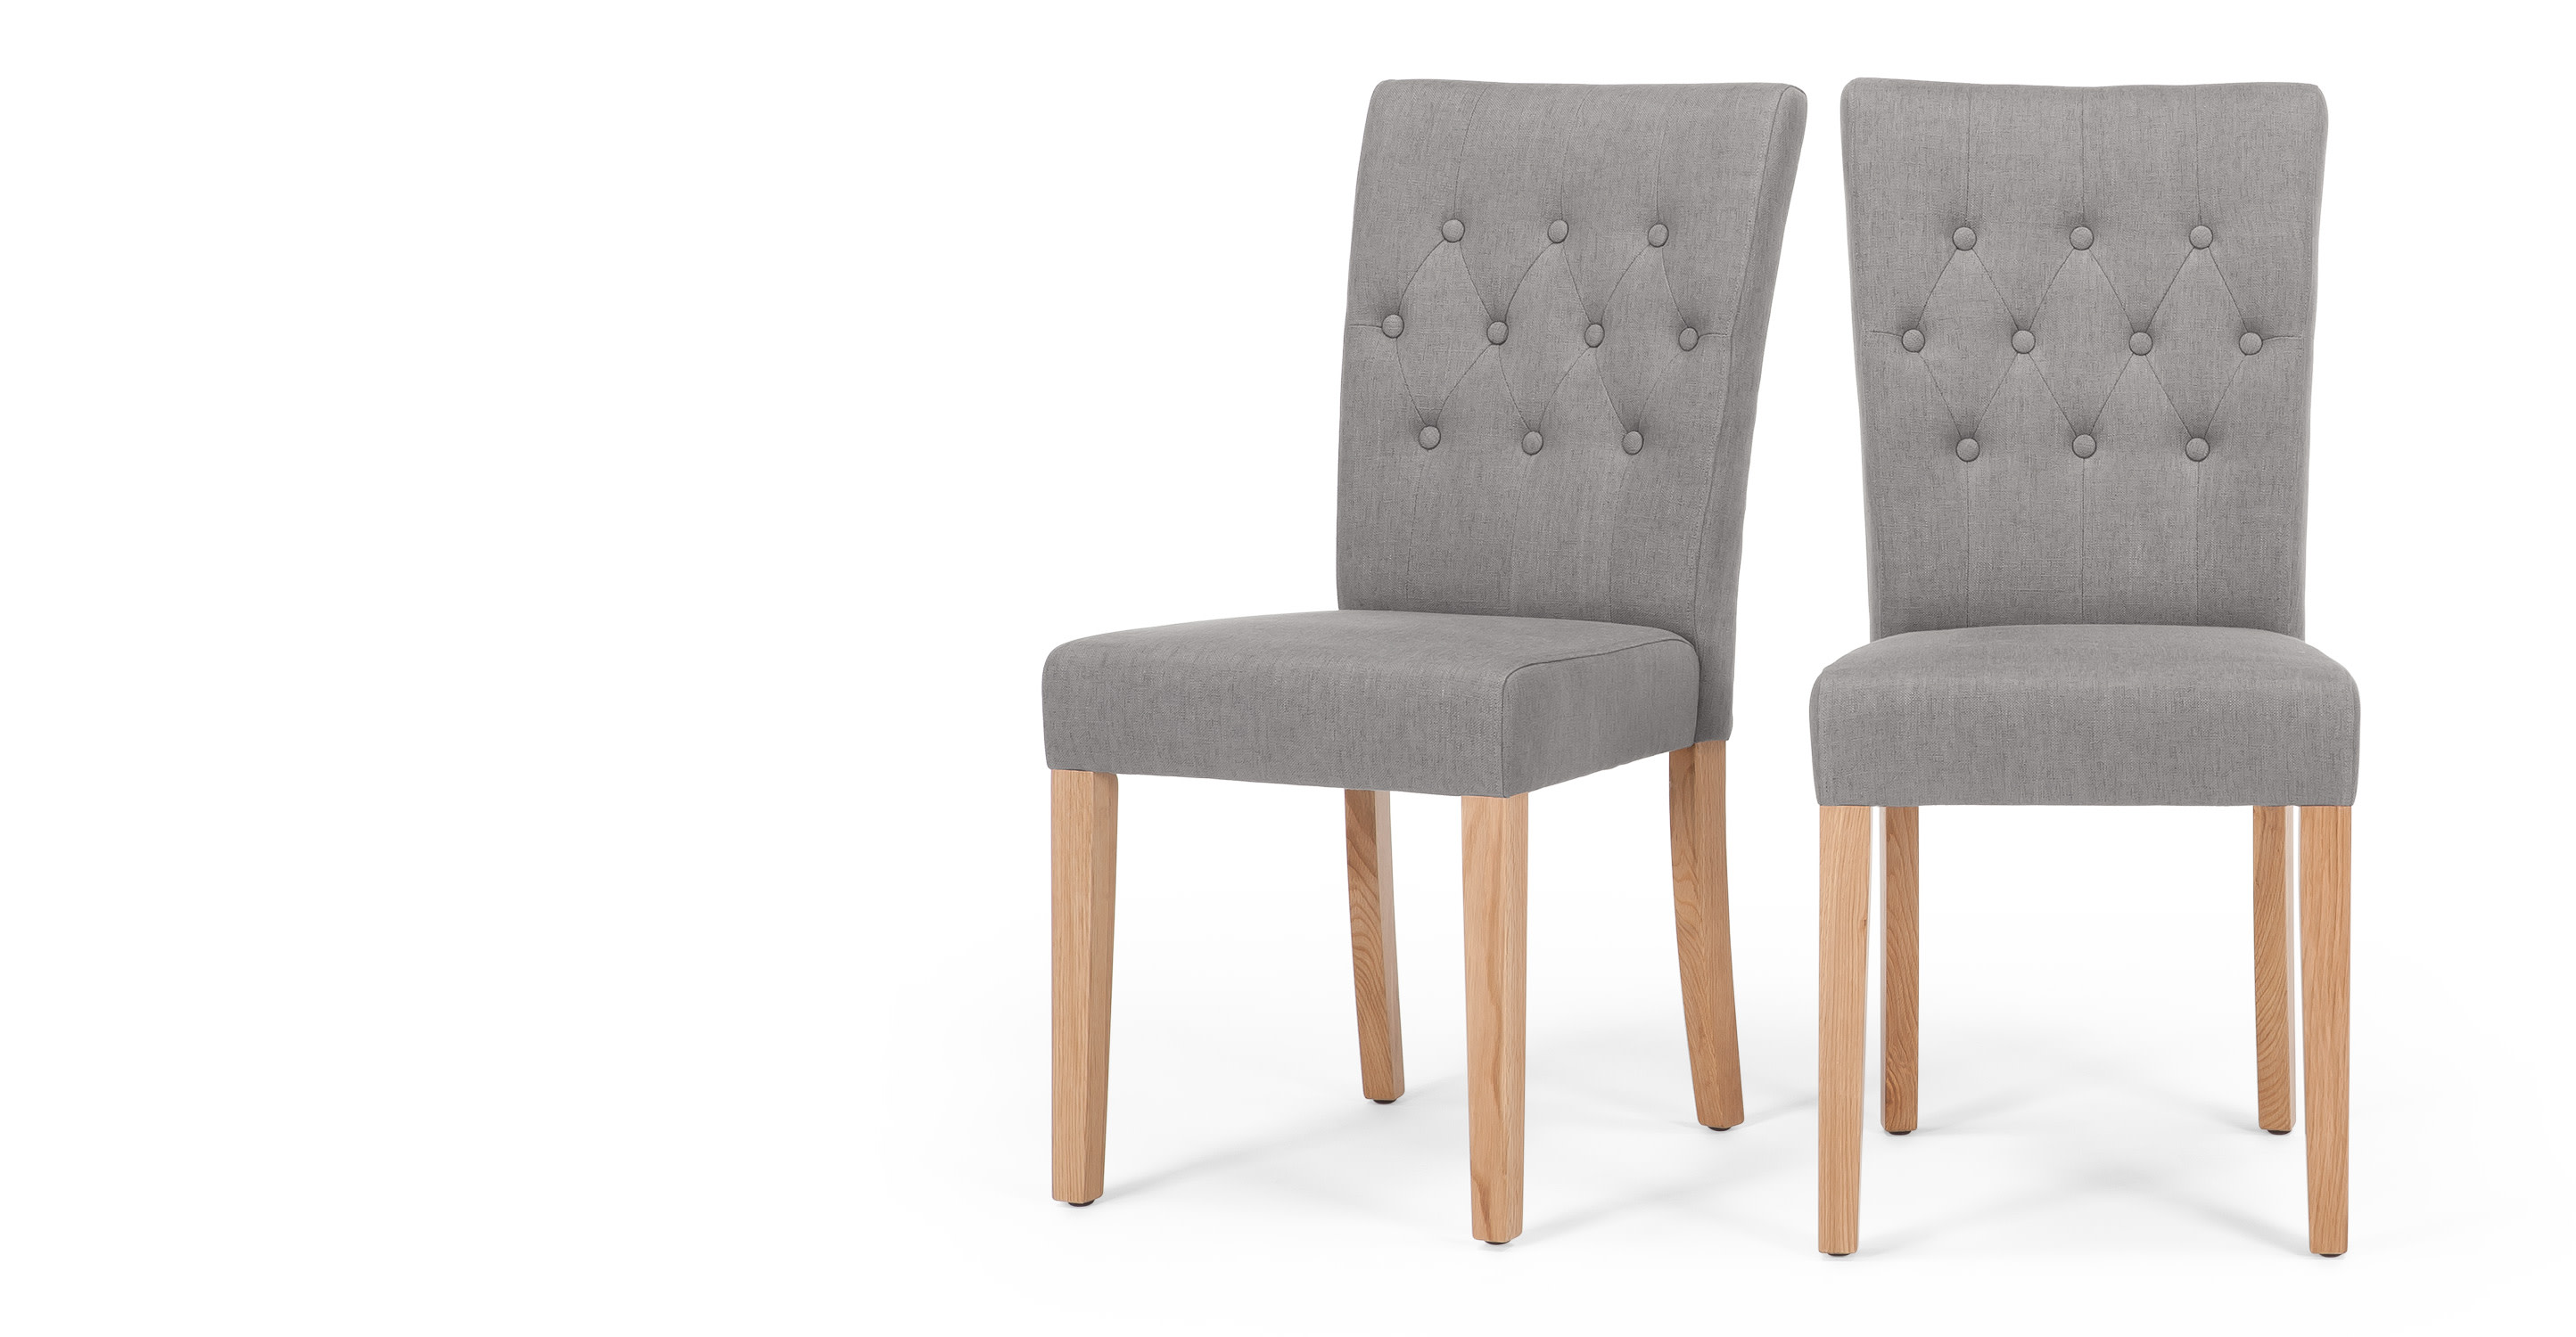 2x flynn dining chairs in graphite grey